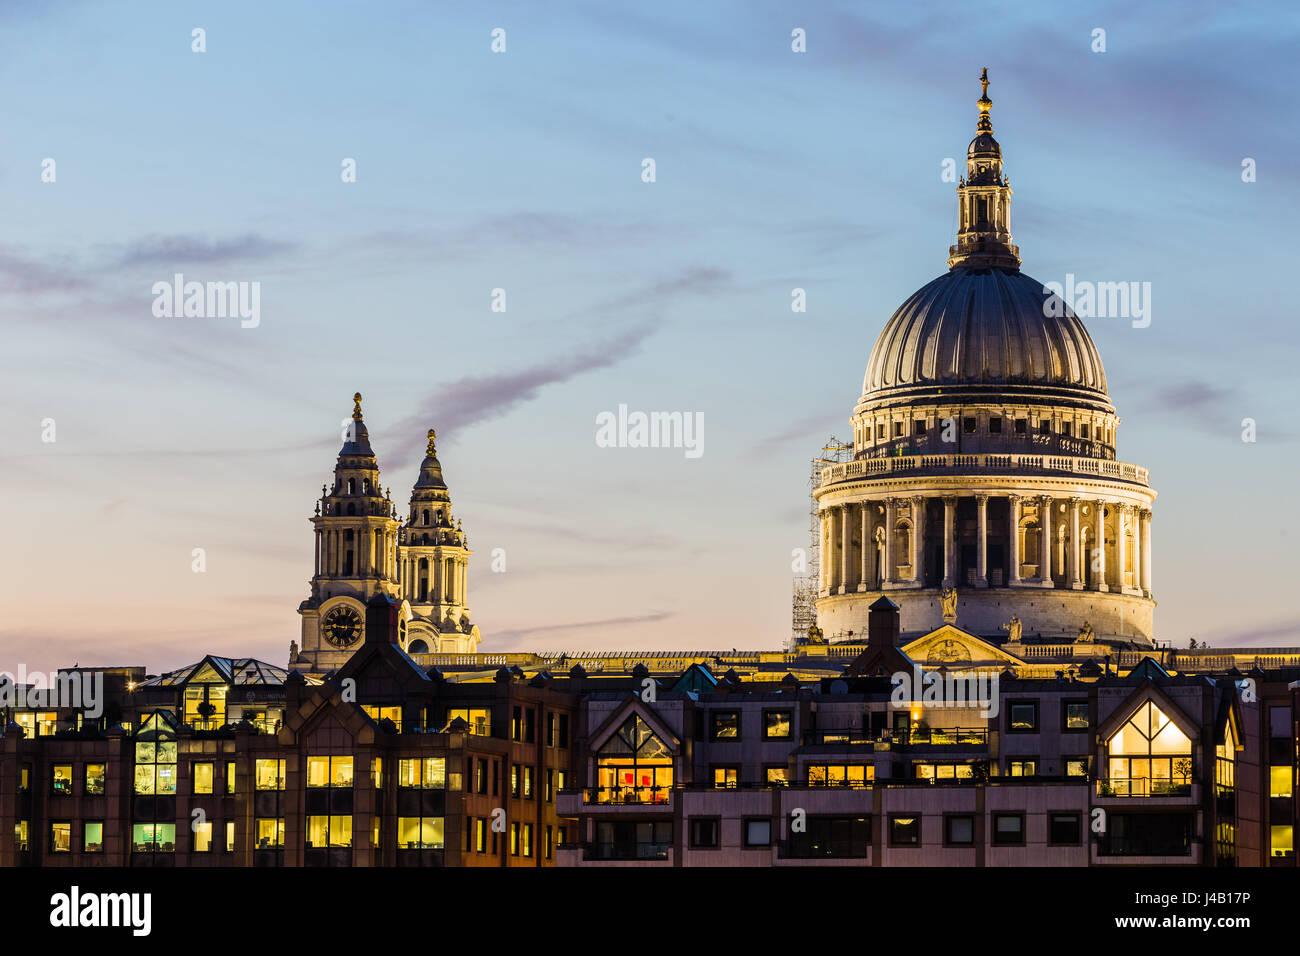 St. Pauls Cathedral in twilight, London - Stock Image